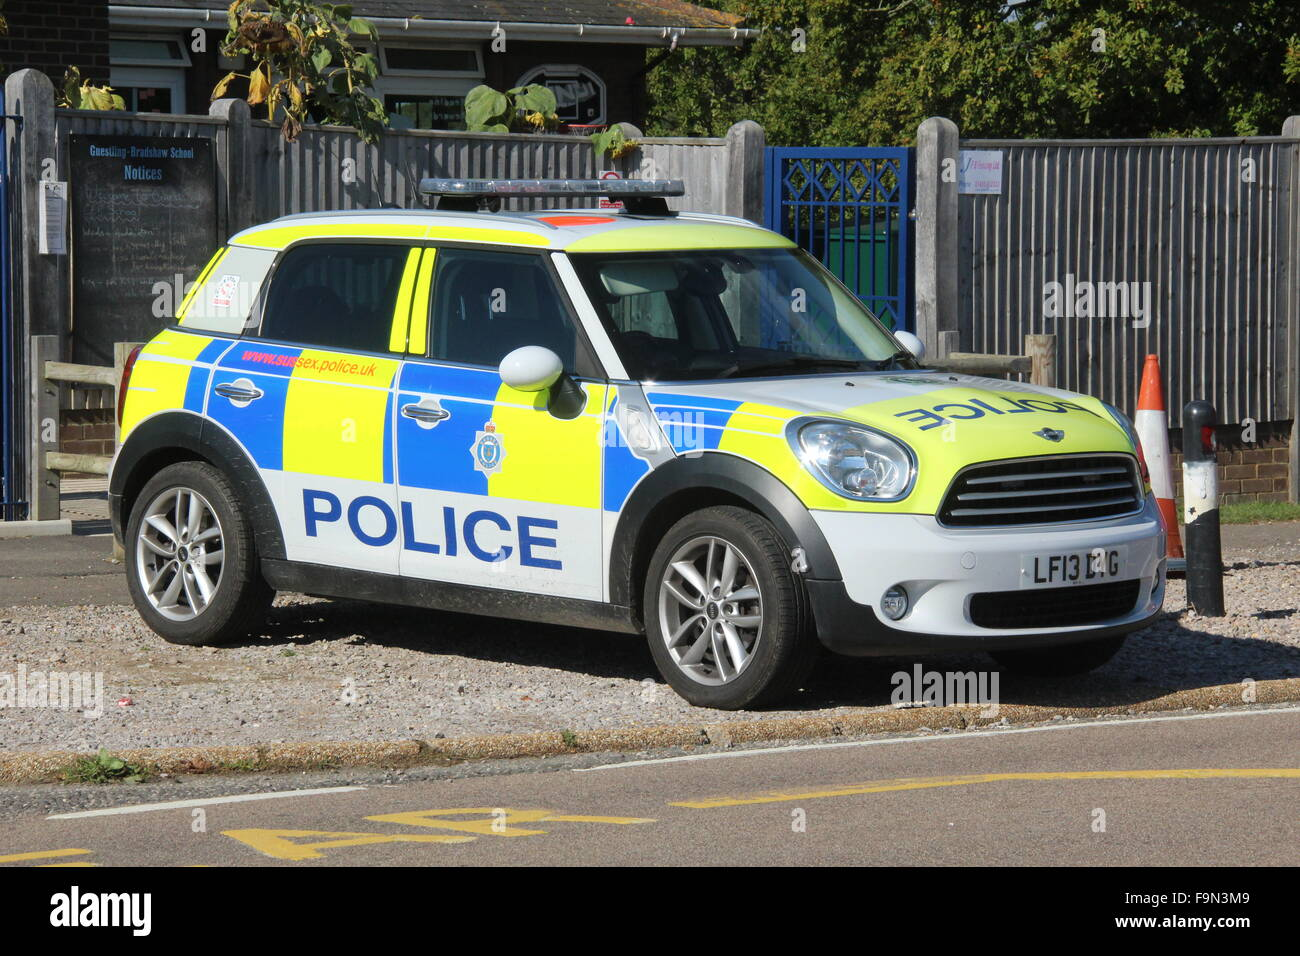 SUSSEX POLICE BMW NEW MINI POLICE CAR SEEN PARKED IN PUBLIC IN BRIGHT SUNSHINE - Stock Image